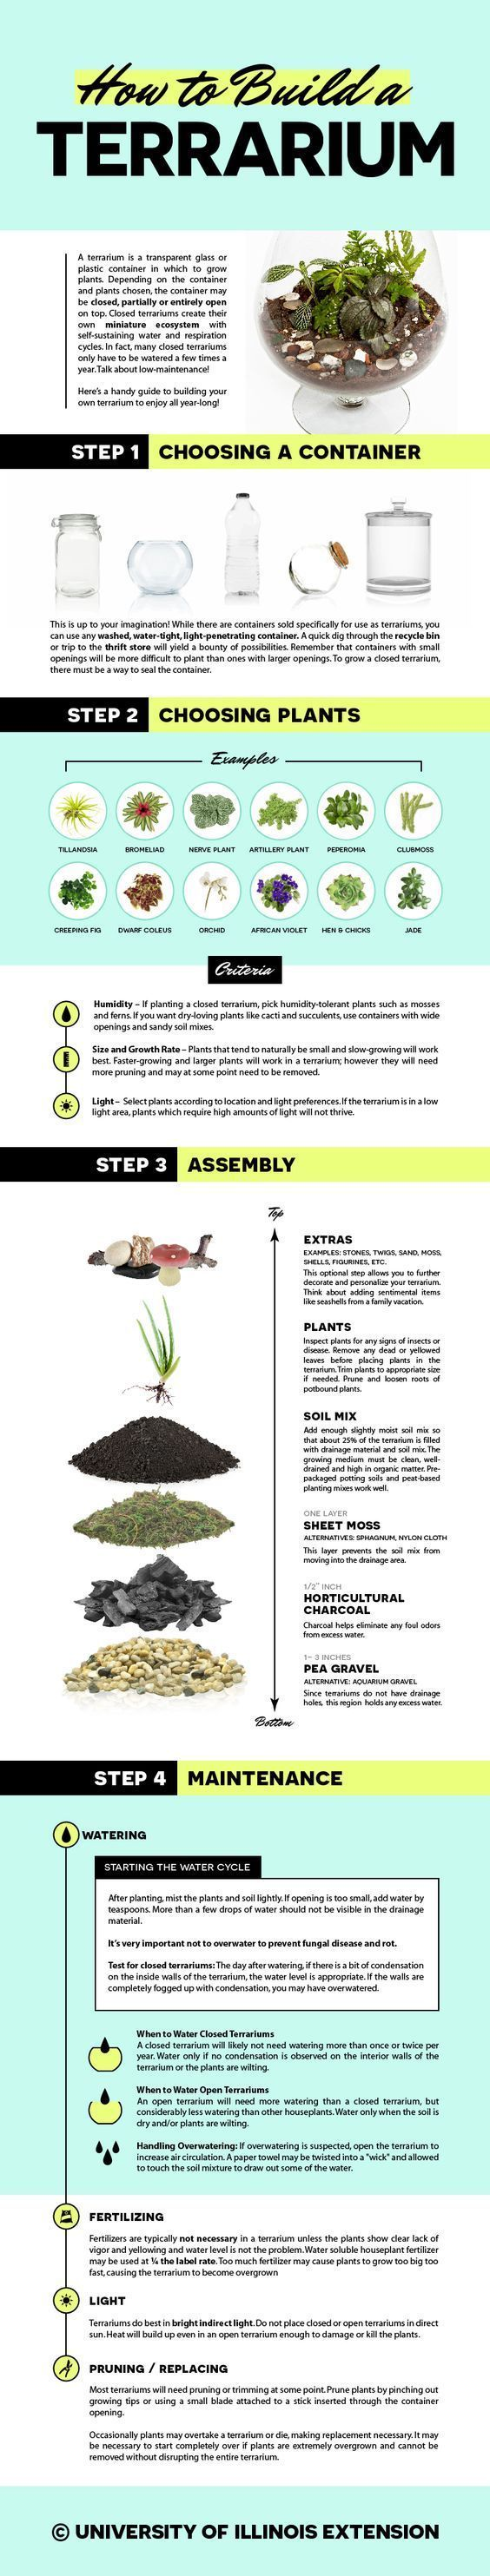 How to Build a Terrarium — fun, kid-friendly DIY garden project! Not to mention, incredibly low-maintenance. www.containerwatergardens.net/create-fascinating-carnivorous-terrarium/